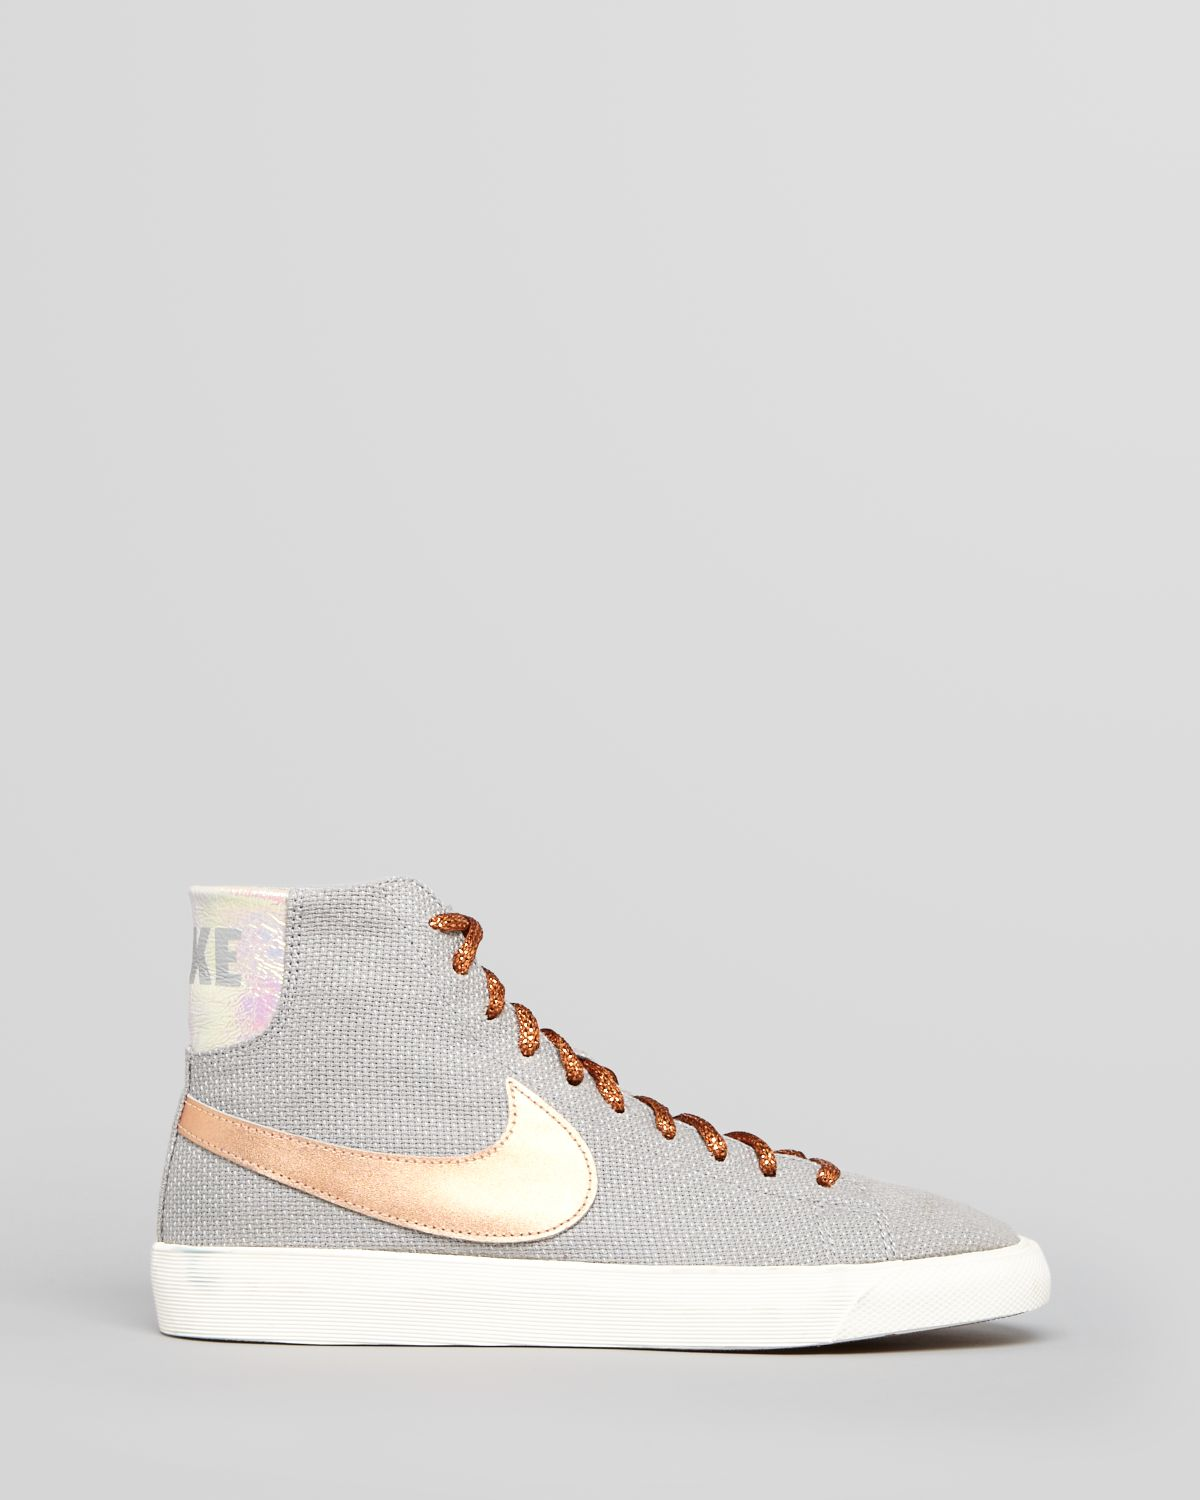 Lyst - Nike Lace Up High Top Sneakers Womens Blazer in Gray